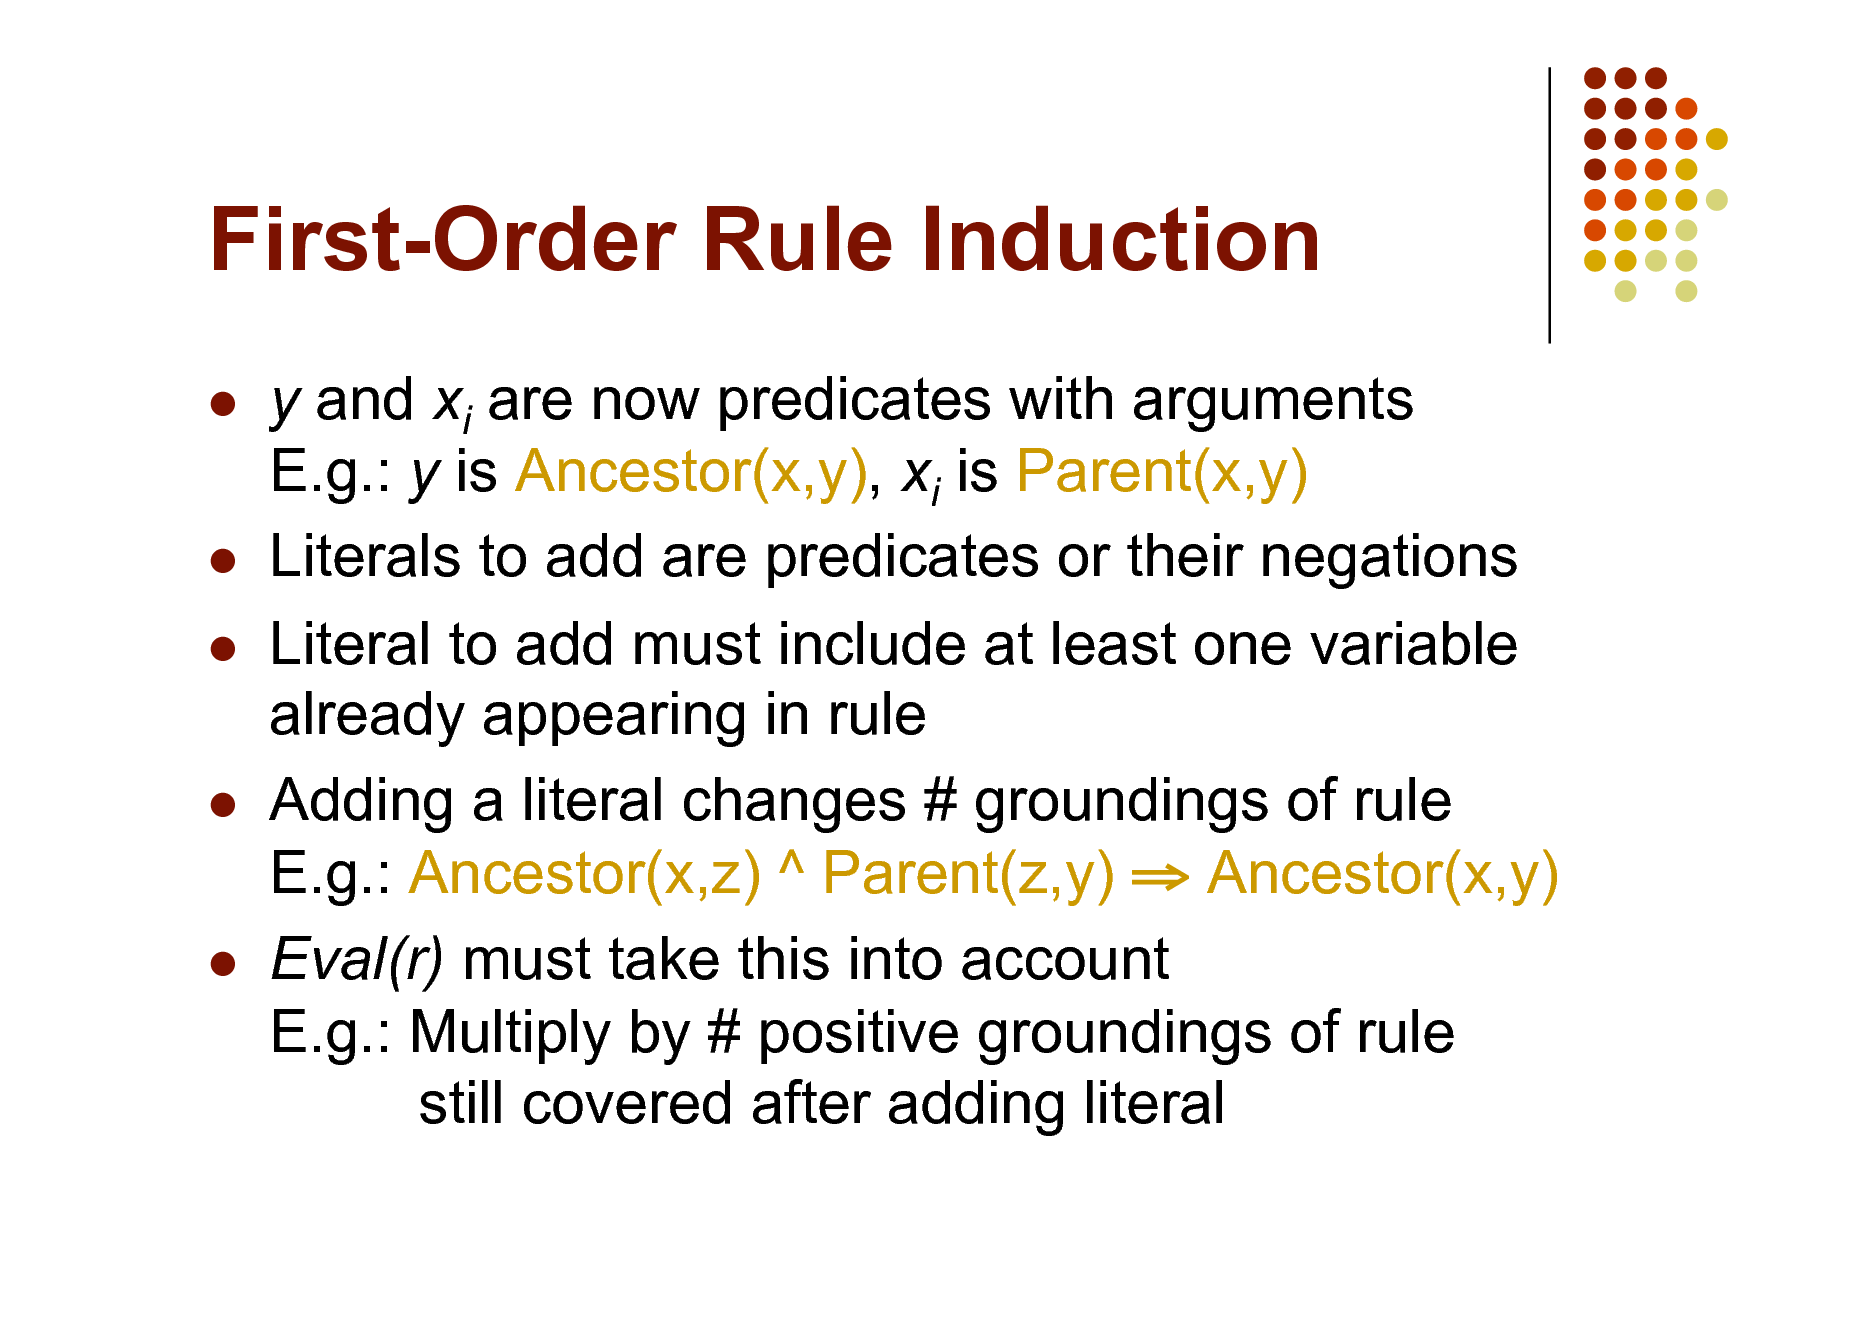 Slide: First-Order Rule Induction          y and xi are now predicates with arguments E.g.: y is Ancestor(x,y), xi is Parent(x,y) Literals to add are predicates or their negations Literal to add must include at least one variable already appearing in rule Adding a literal changes # groundings of rule E.g.: Ancestor(x,z) ^ Parent(z,y)  Ancestor(x,y) Eval(r) must take this into account E.g.: Multiply by # positive groundings of rule still covered after adding literal